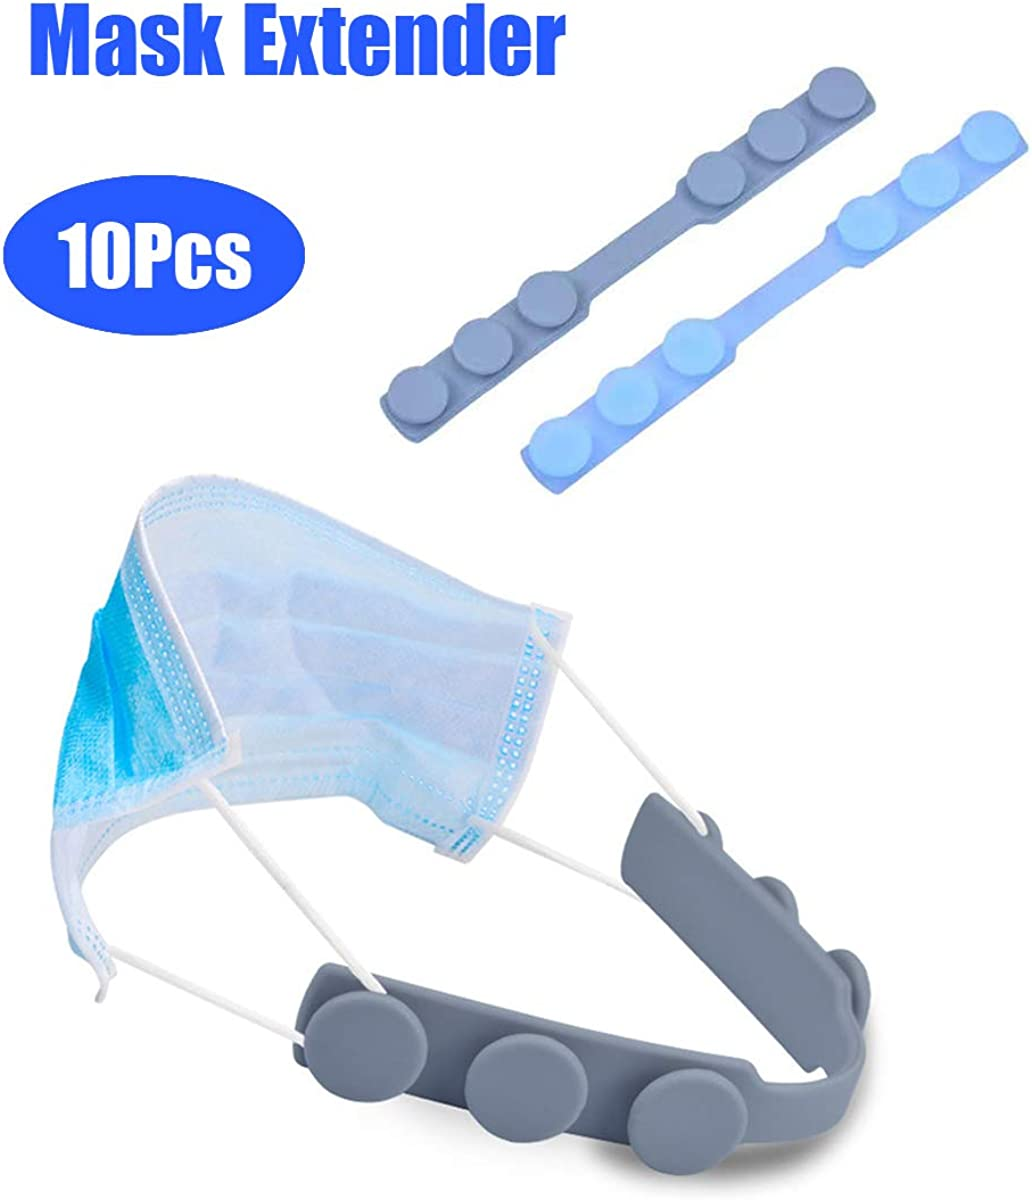 10PCS Mask Extender Strap Extender Anti-Tightening Ear Protector Decompression Holder Hook Ear Strap Accessories Ear Grips Extension Mask Buckle Ear Pain Relieved Colour Random(Grey and Blue)